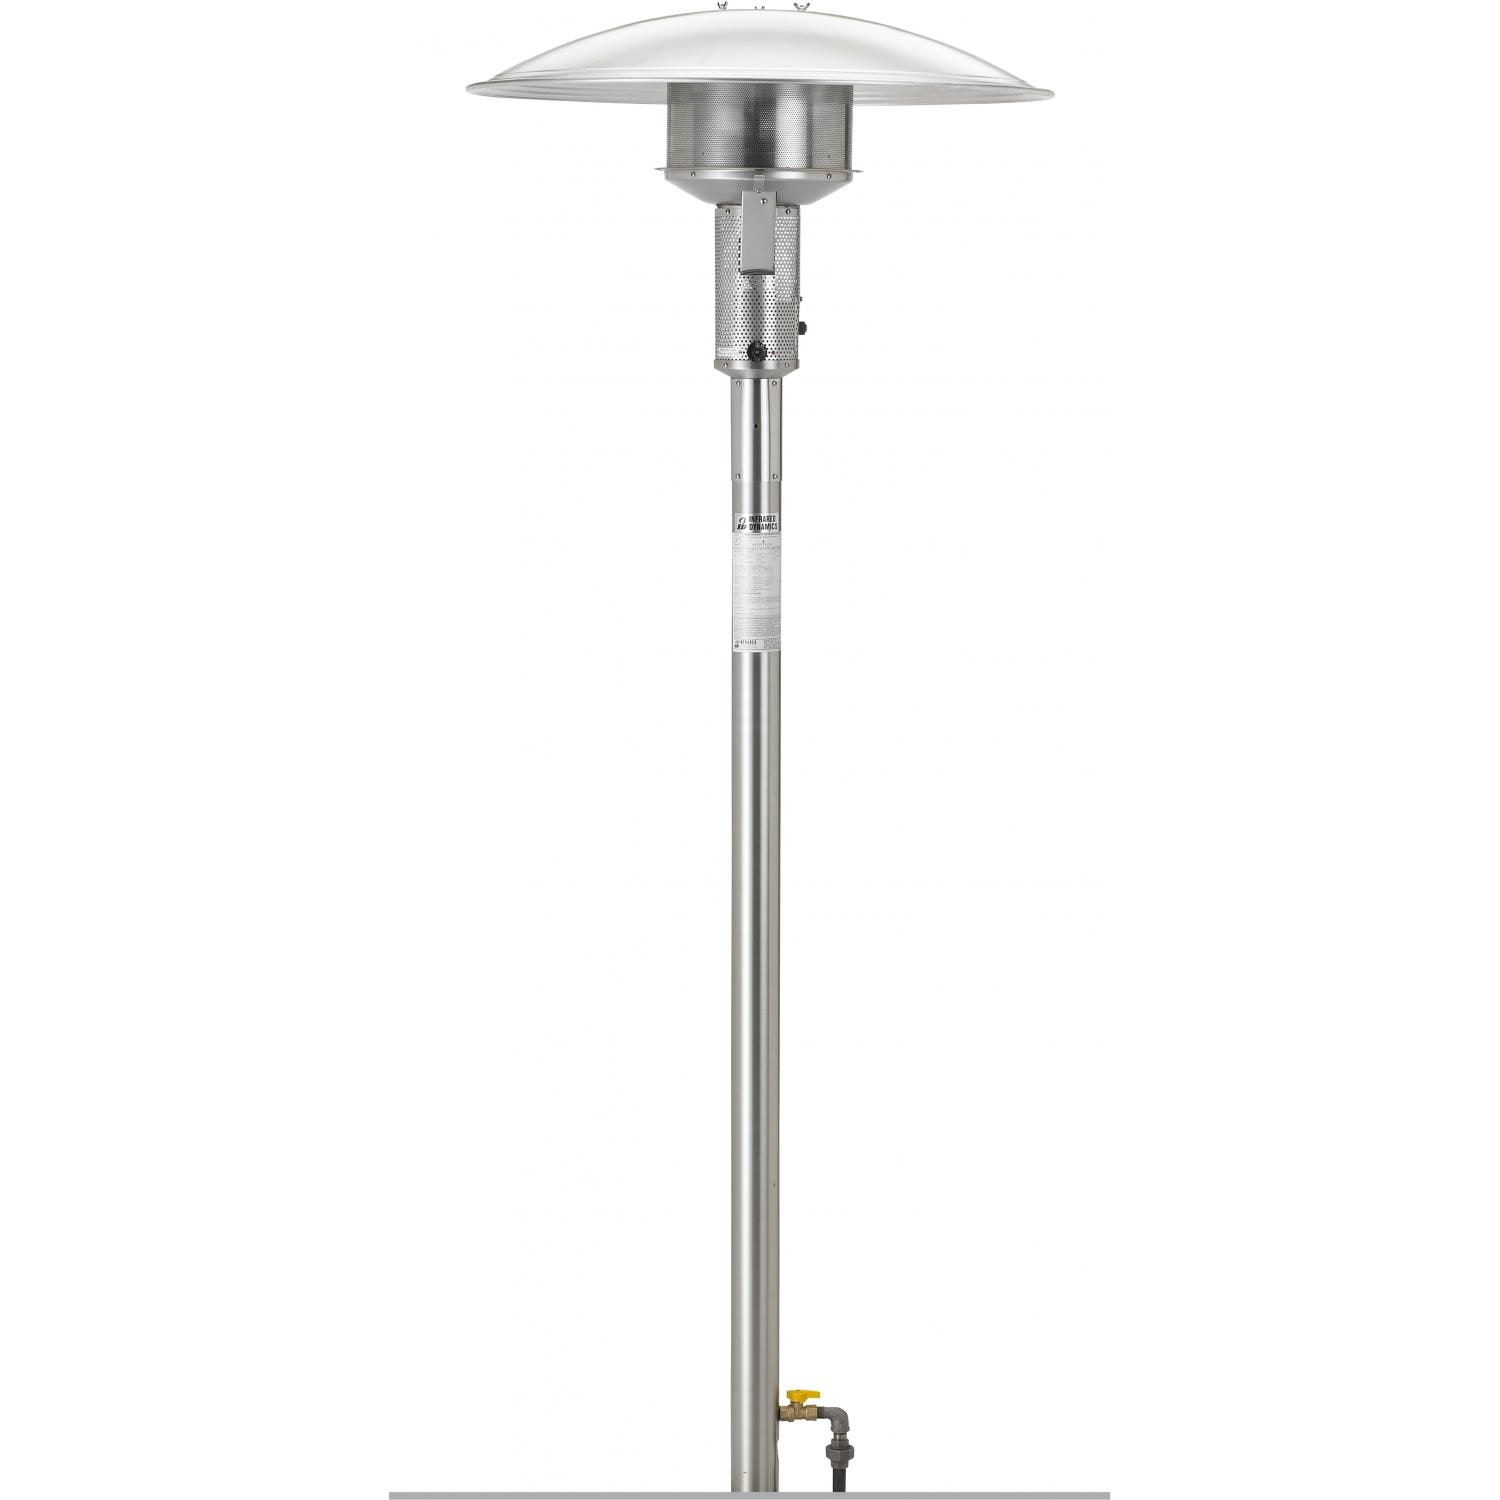 sunglo 50000 btu natural gas post mount patio heater with